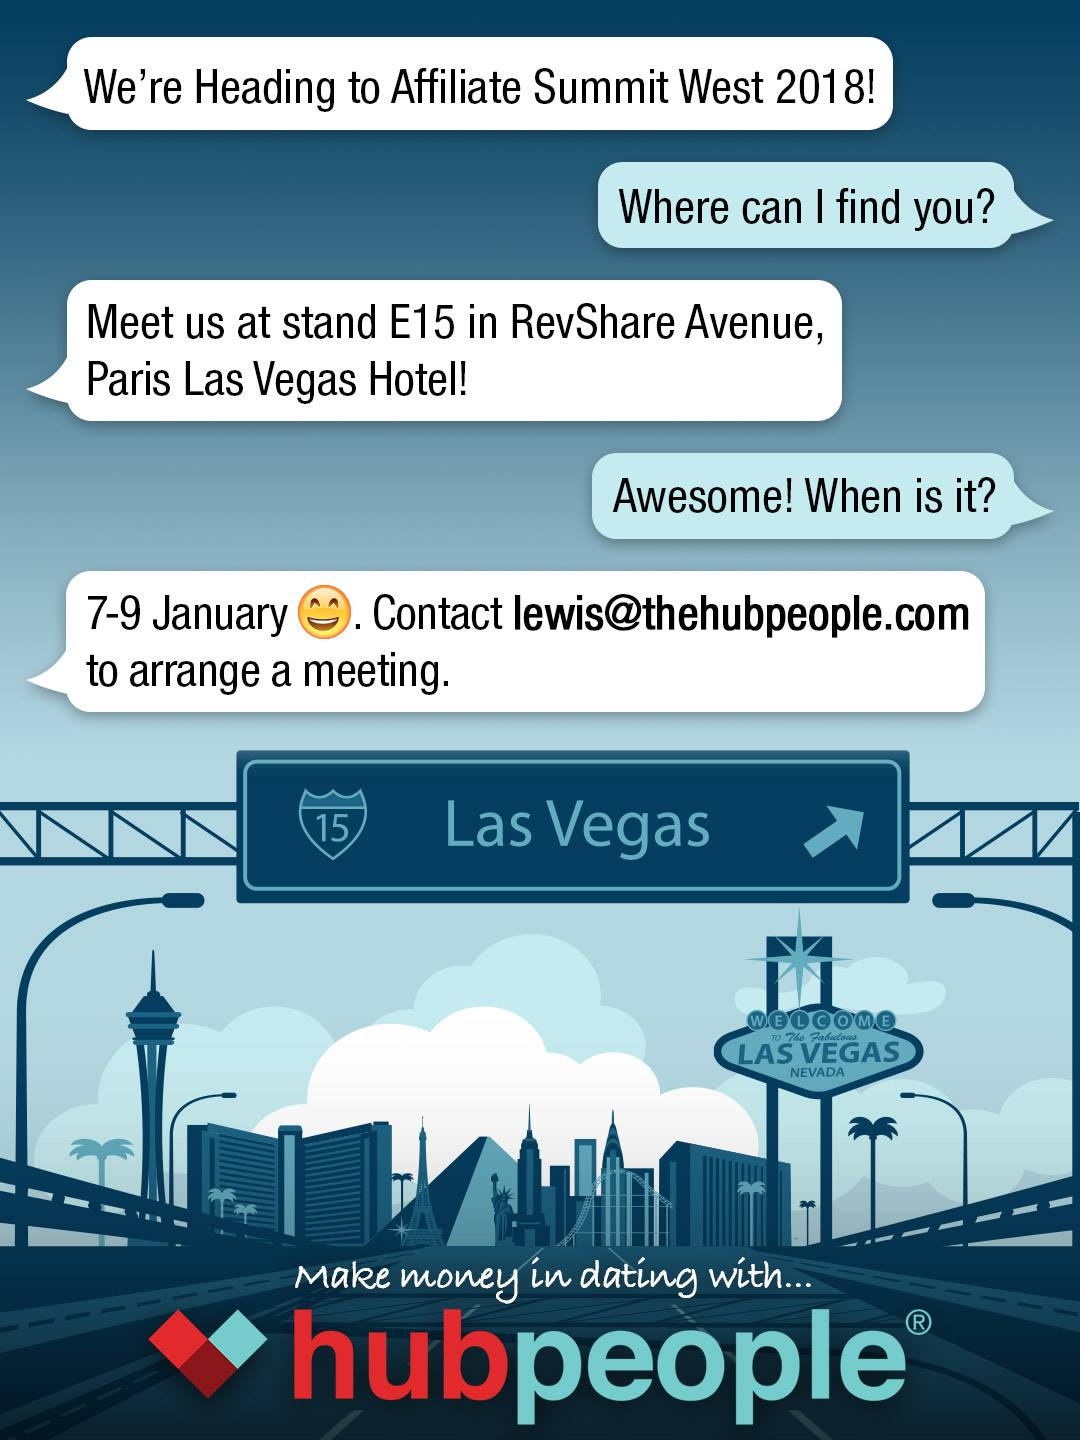 affiliate-summit-west-in-las-vegas-in-january